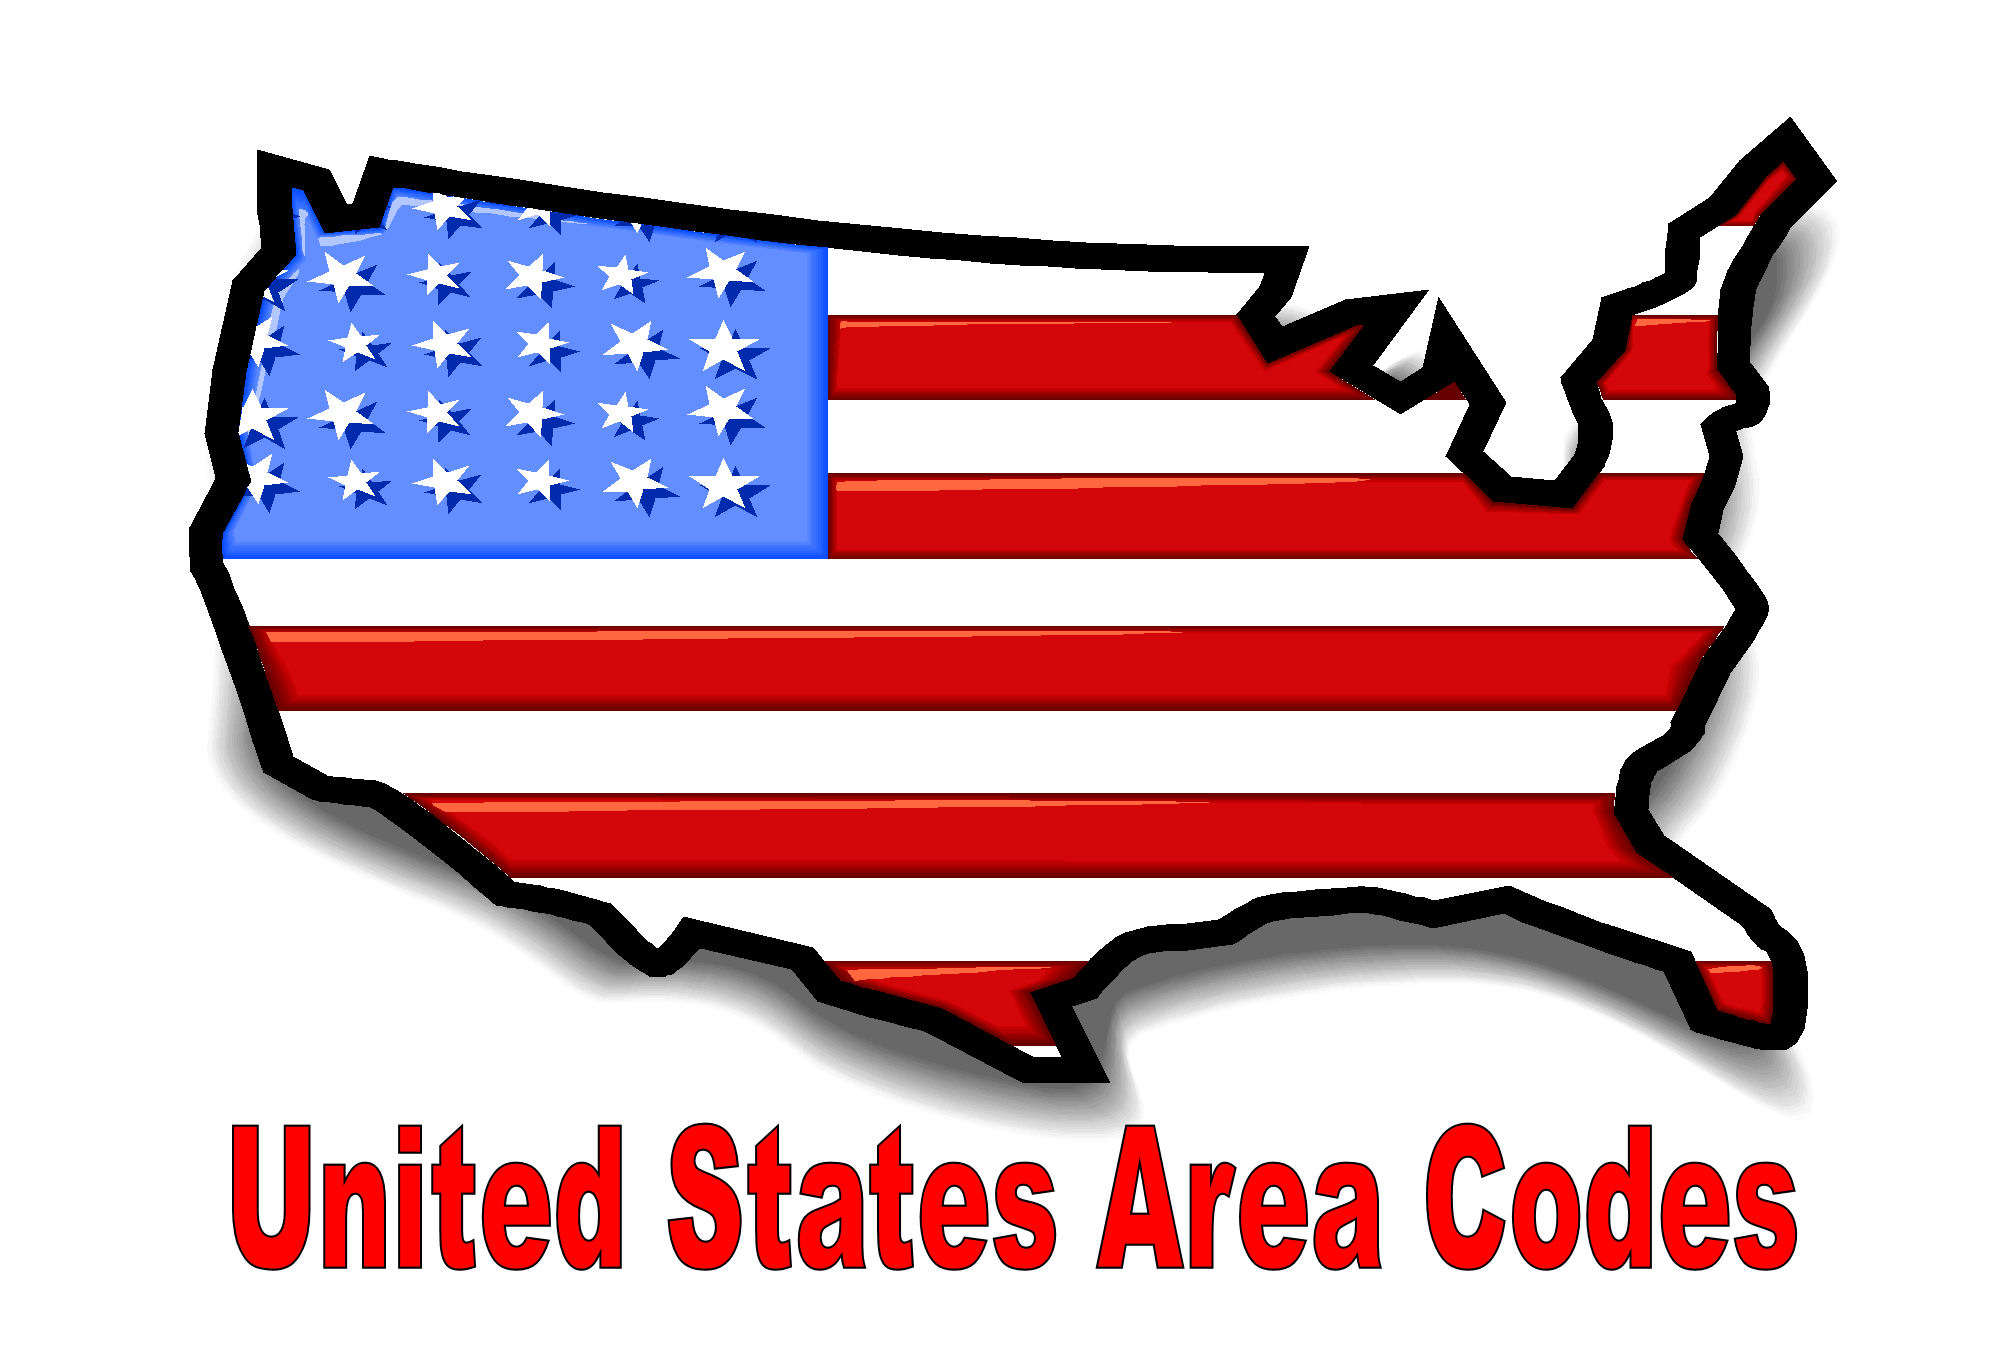 Expired and Not Verified The United States Flags Store Promo Codes & Offers. These offers have not been verified to work. They are either expired or are not currently valid.